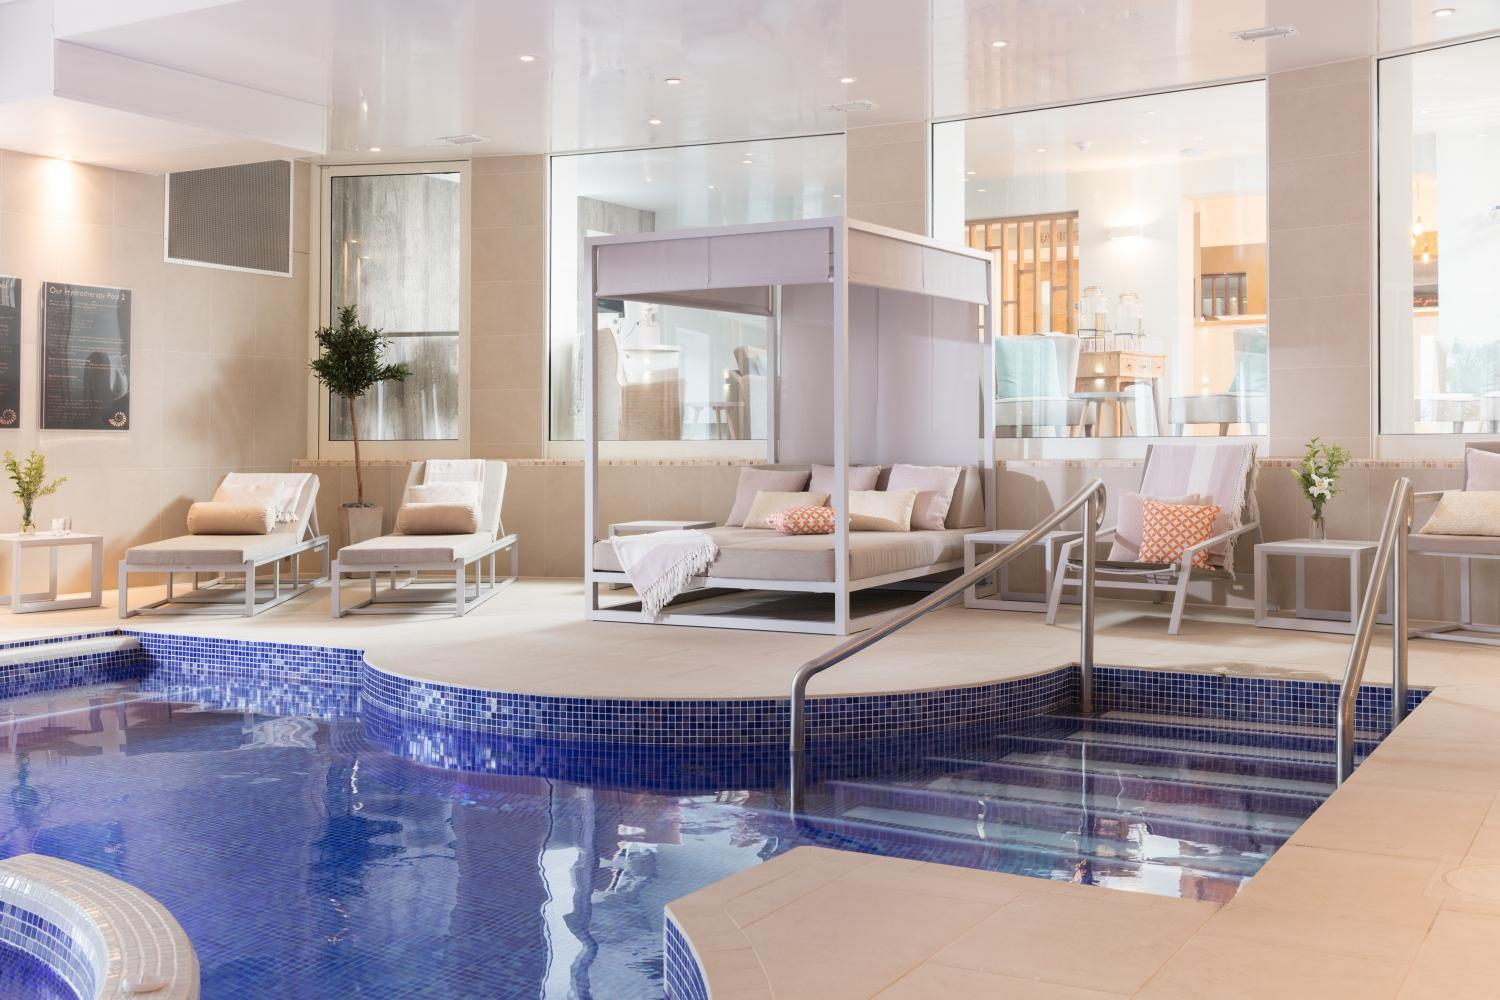 St Michaels Spa features 10 treatment rooms, a hydrotherapy pool, a Cornish salt steam room and a rainforest steam room